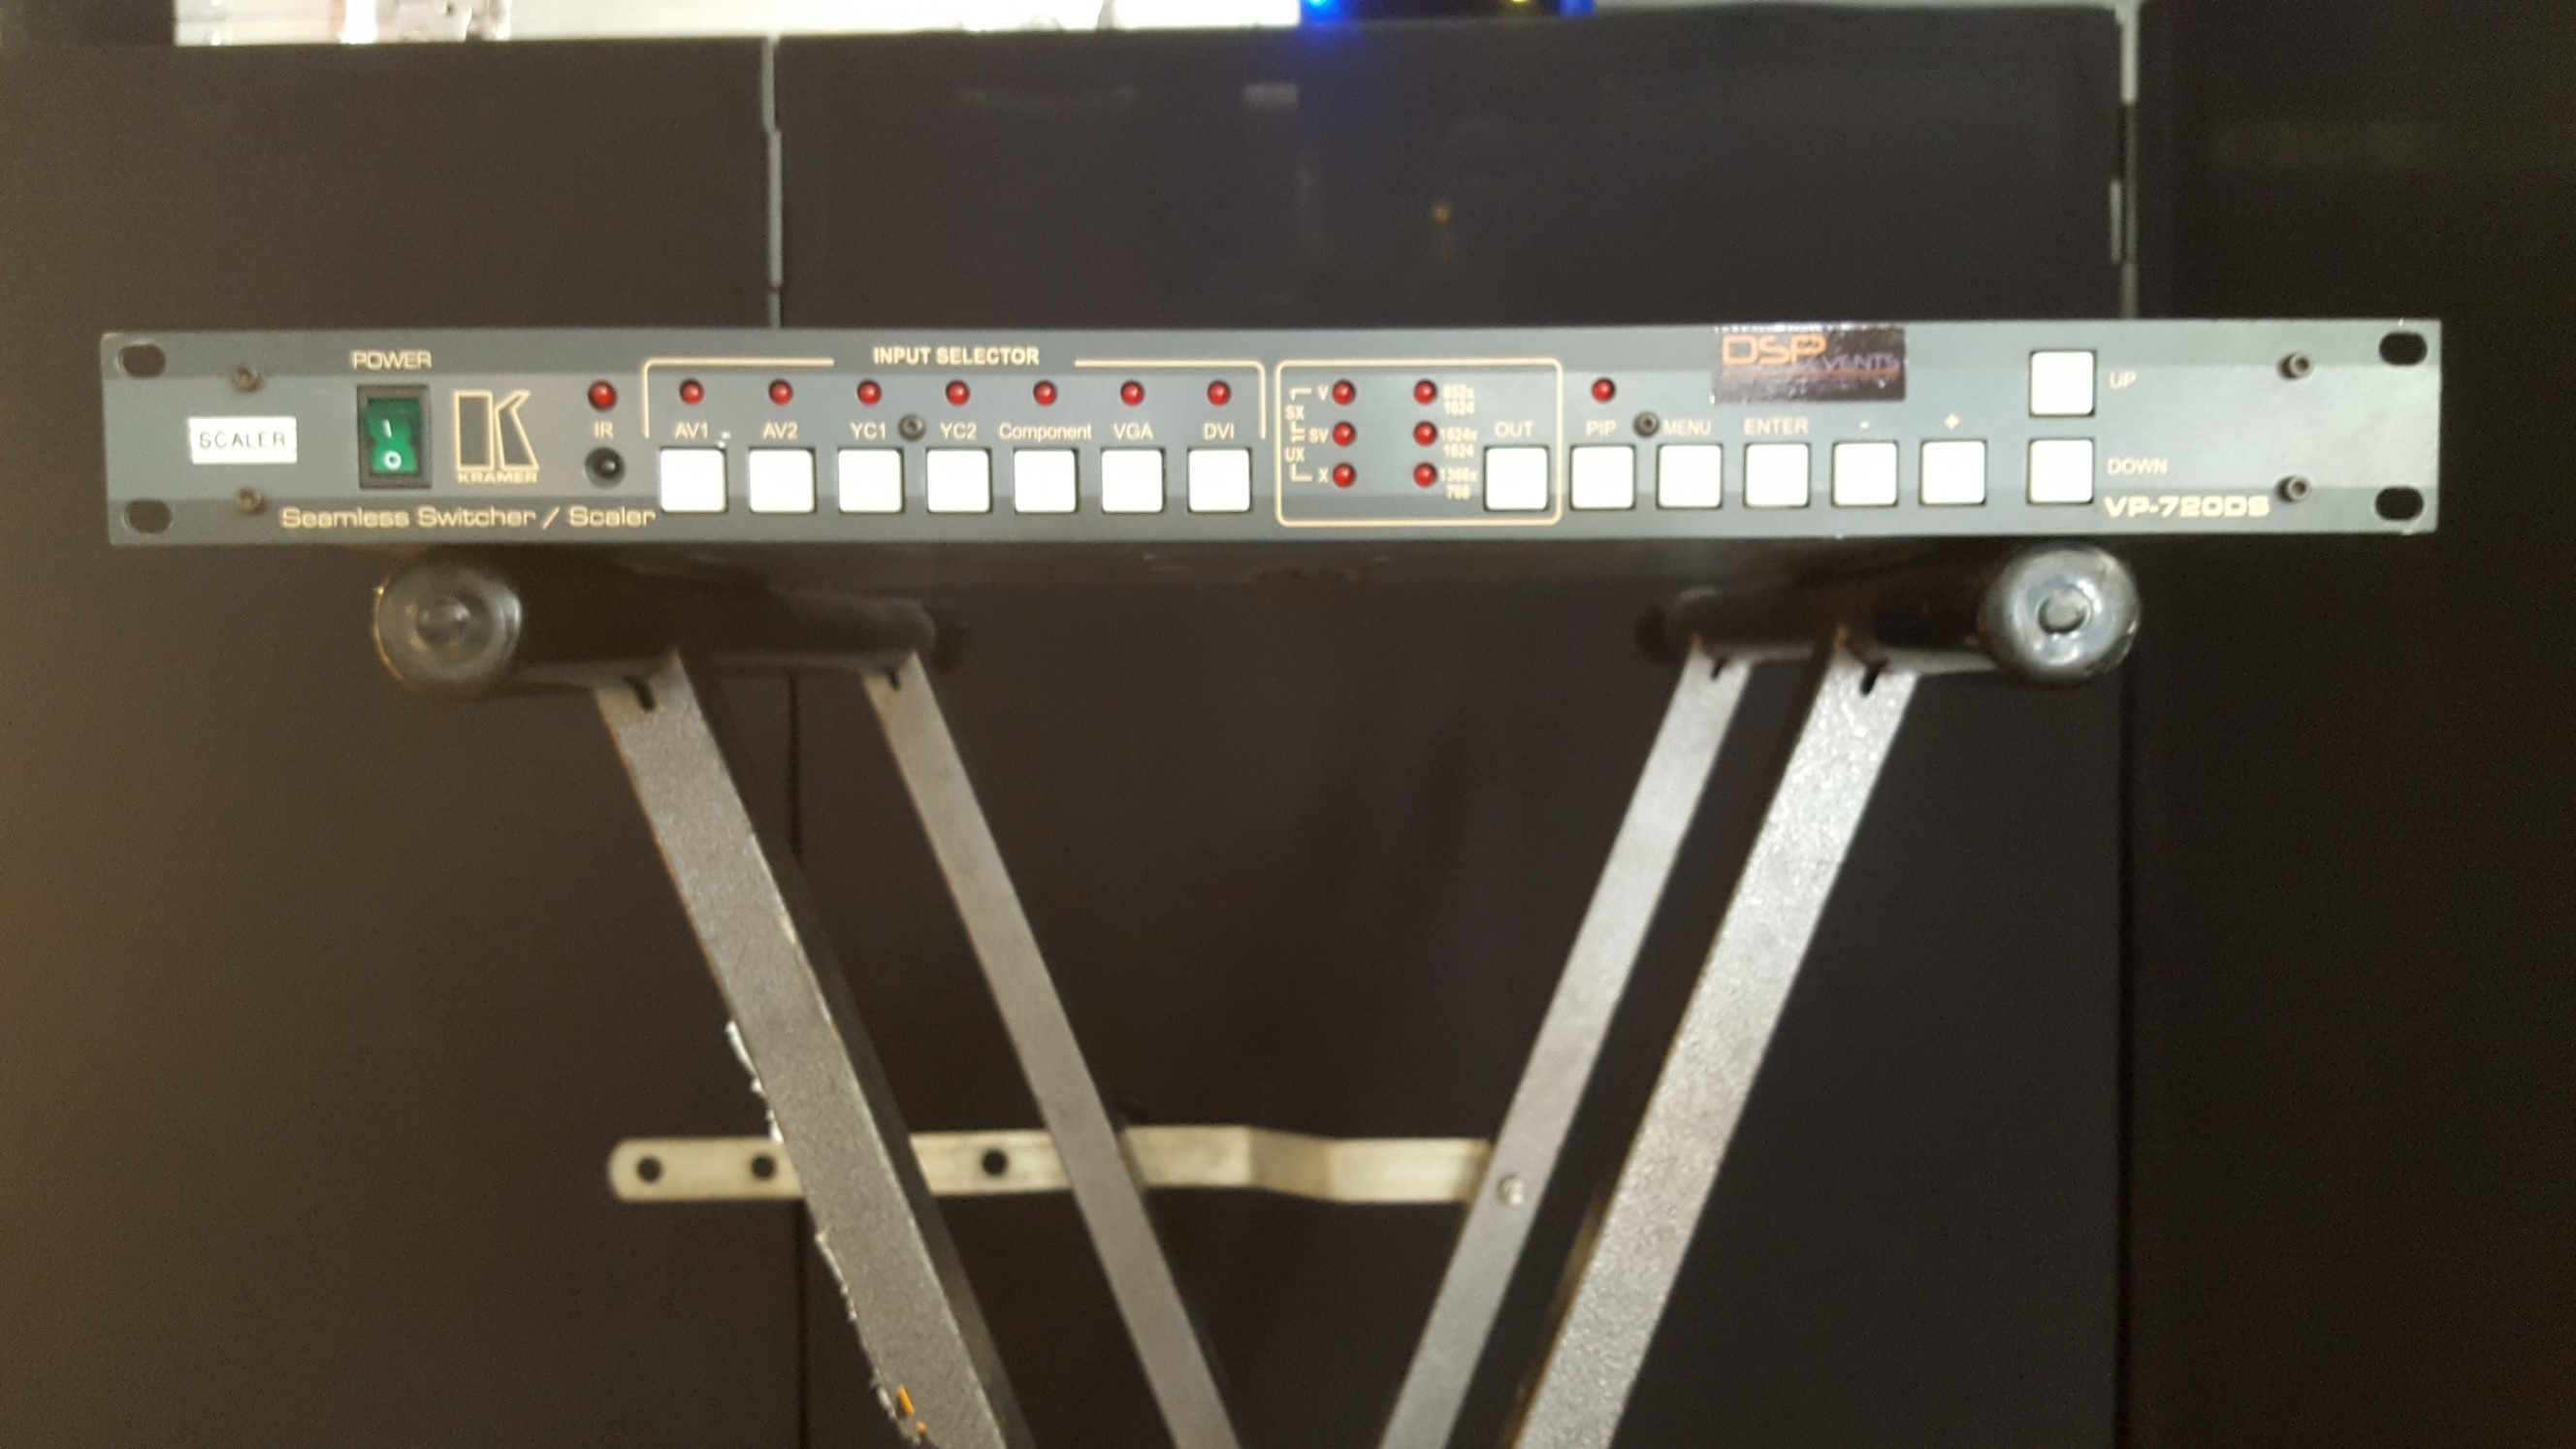 VP-720DS Seamless Switcher / Scaler